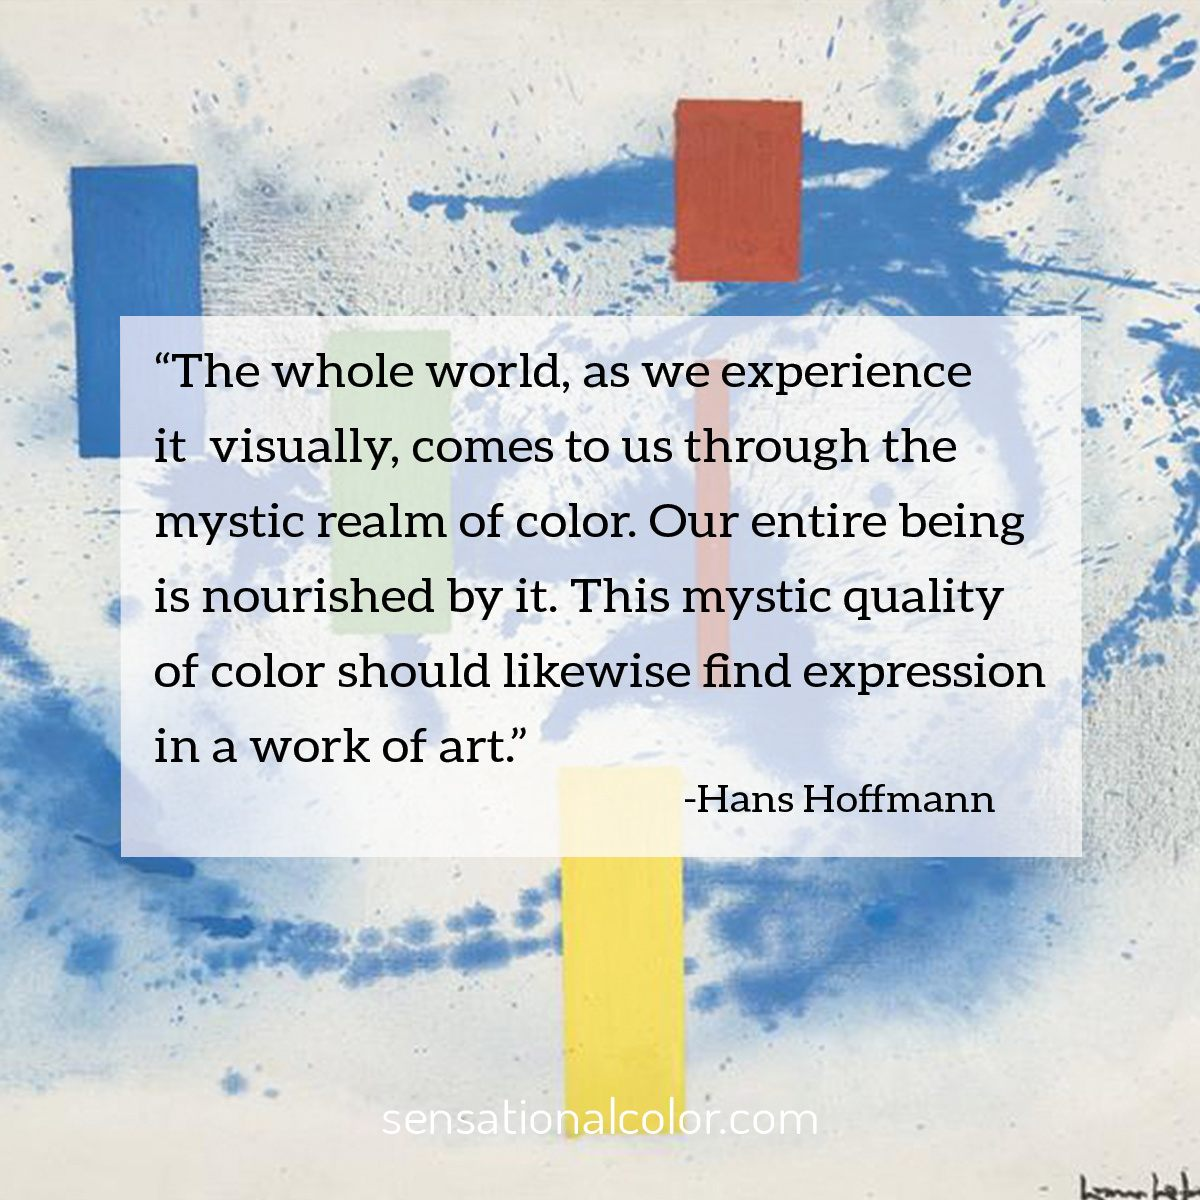 """The whole world, as we experience it visually, comes to us through the mystic realm of color. Our entire being is nourished by it. This mystic quality of color should likewise find expression in a work of art.""  - Hans Hofmann"